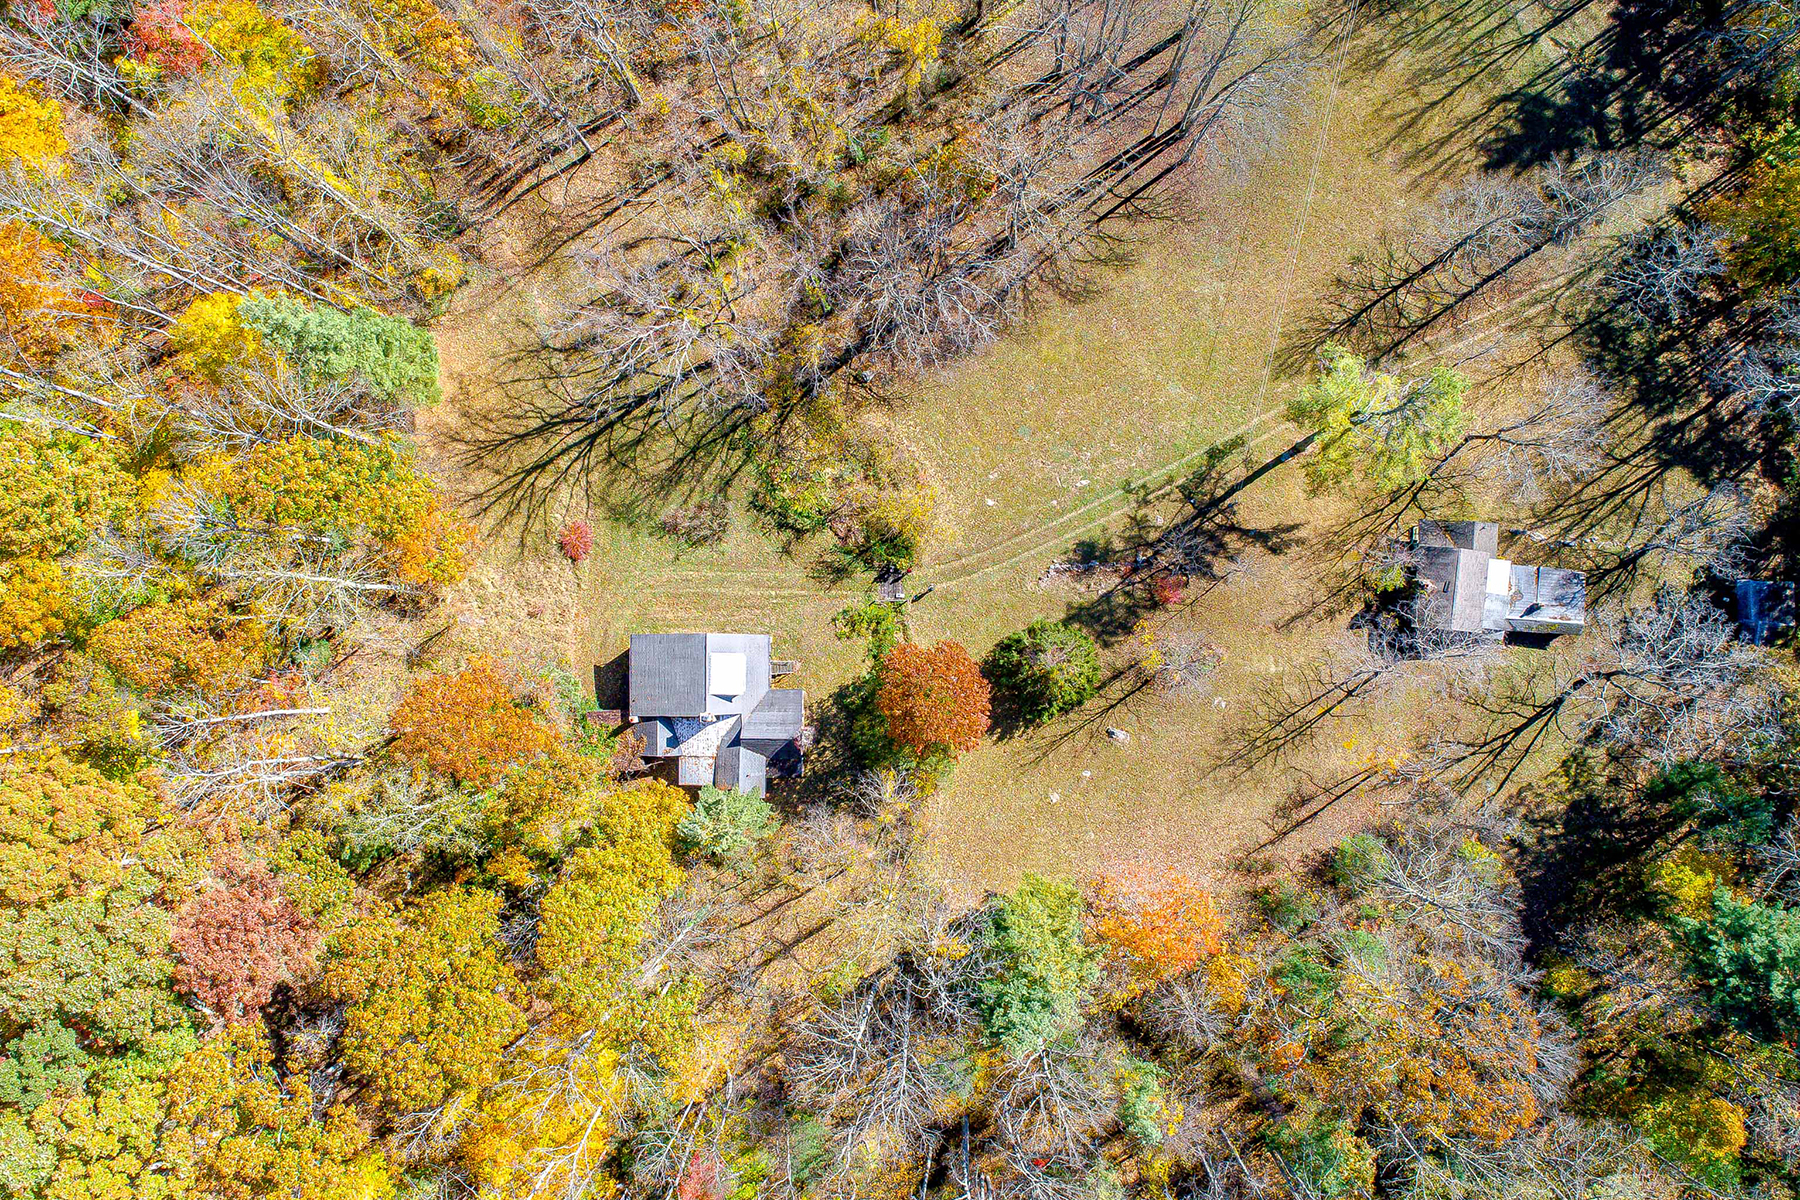 Single Family Homes for Sale at ASHEVILLE - EAST 380 Bull Creek Rd Asheville, North Carolina 28805 United States